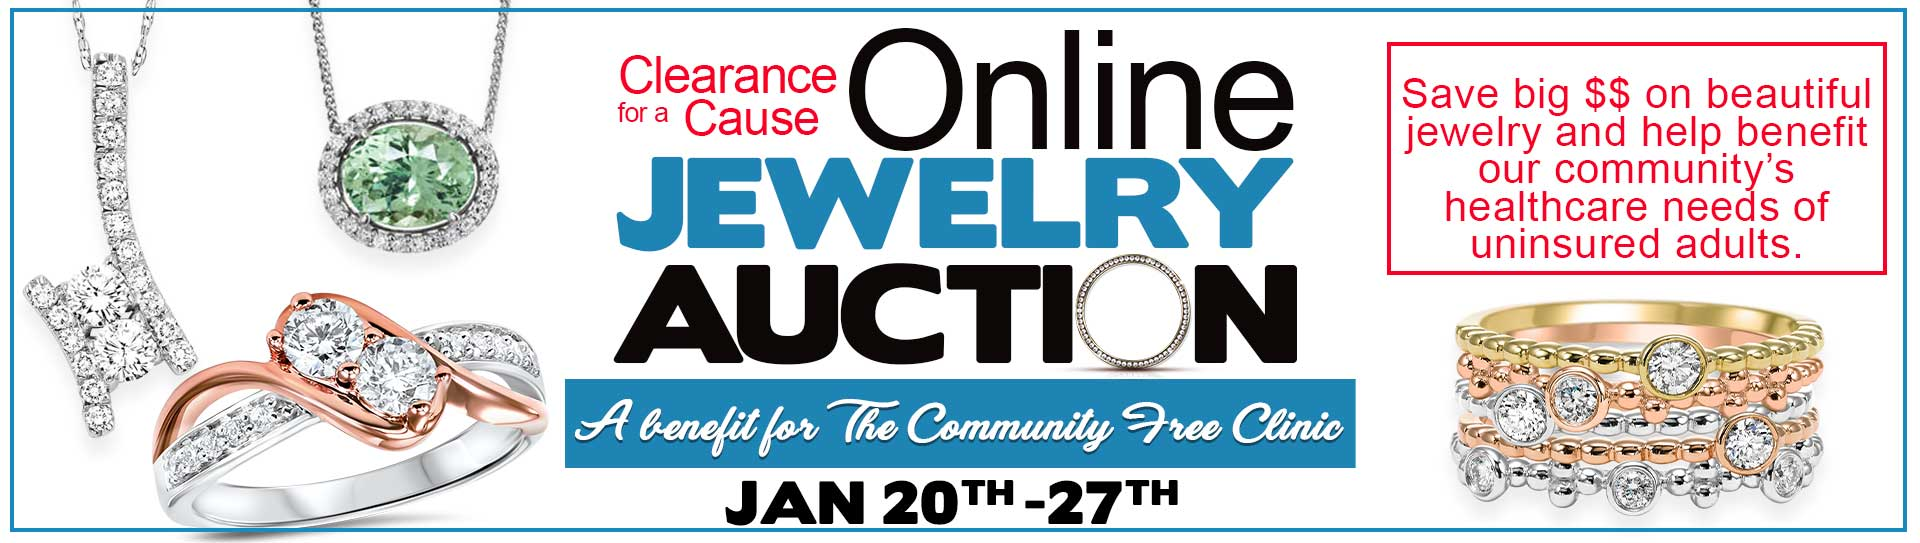 Clearance for a Cause